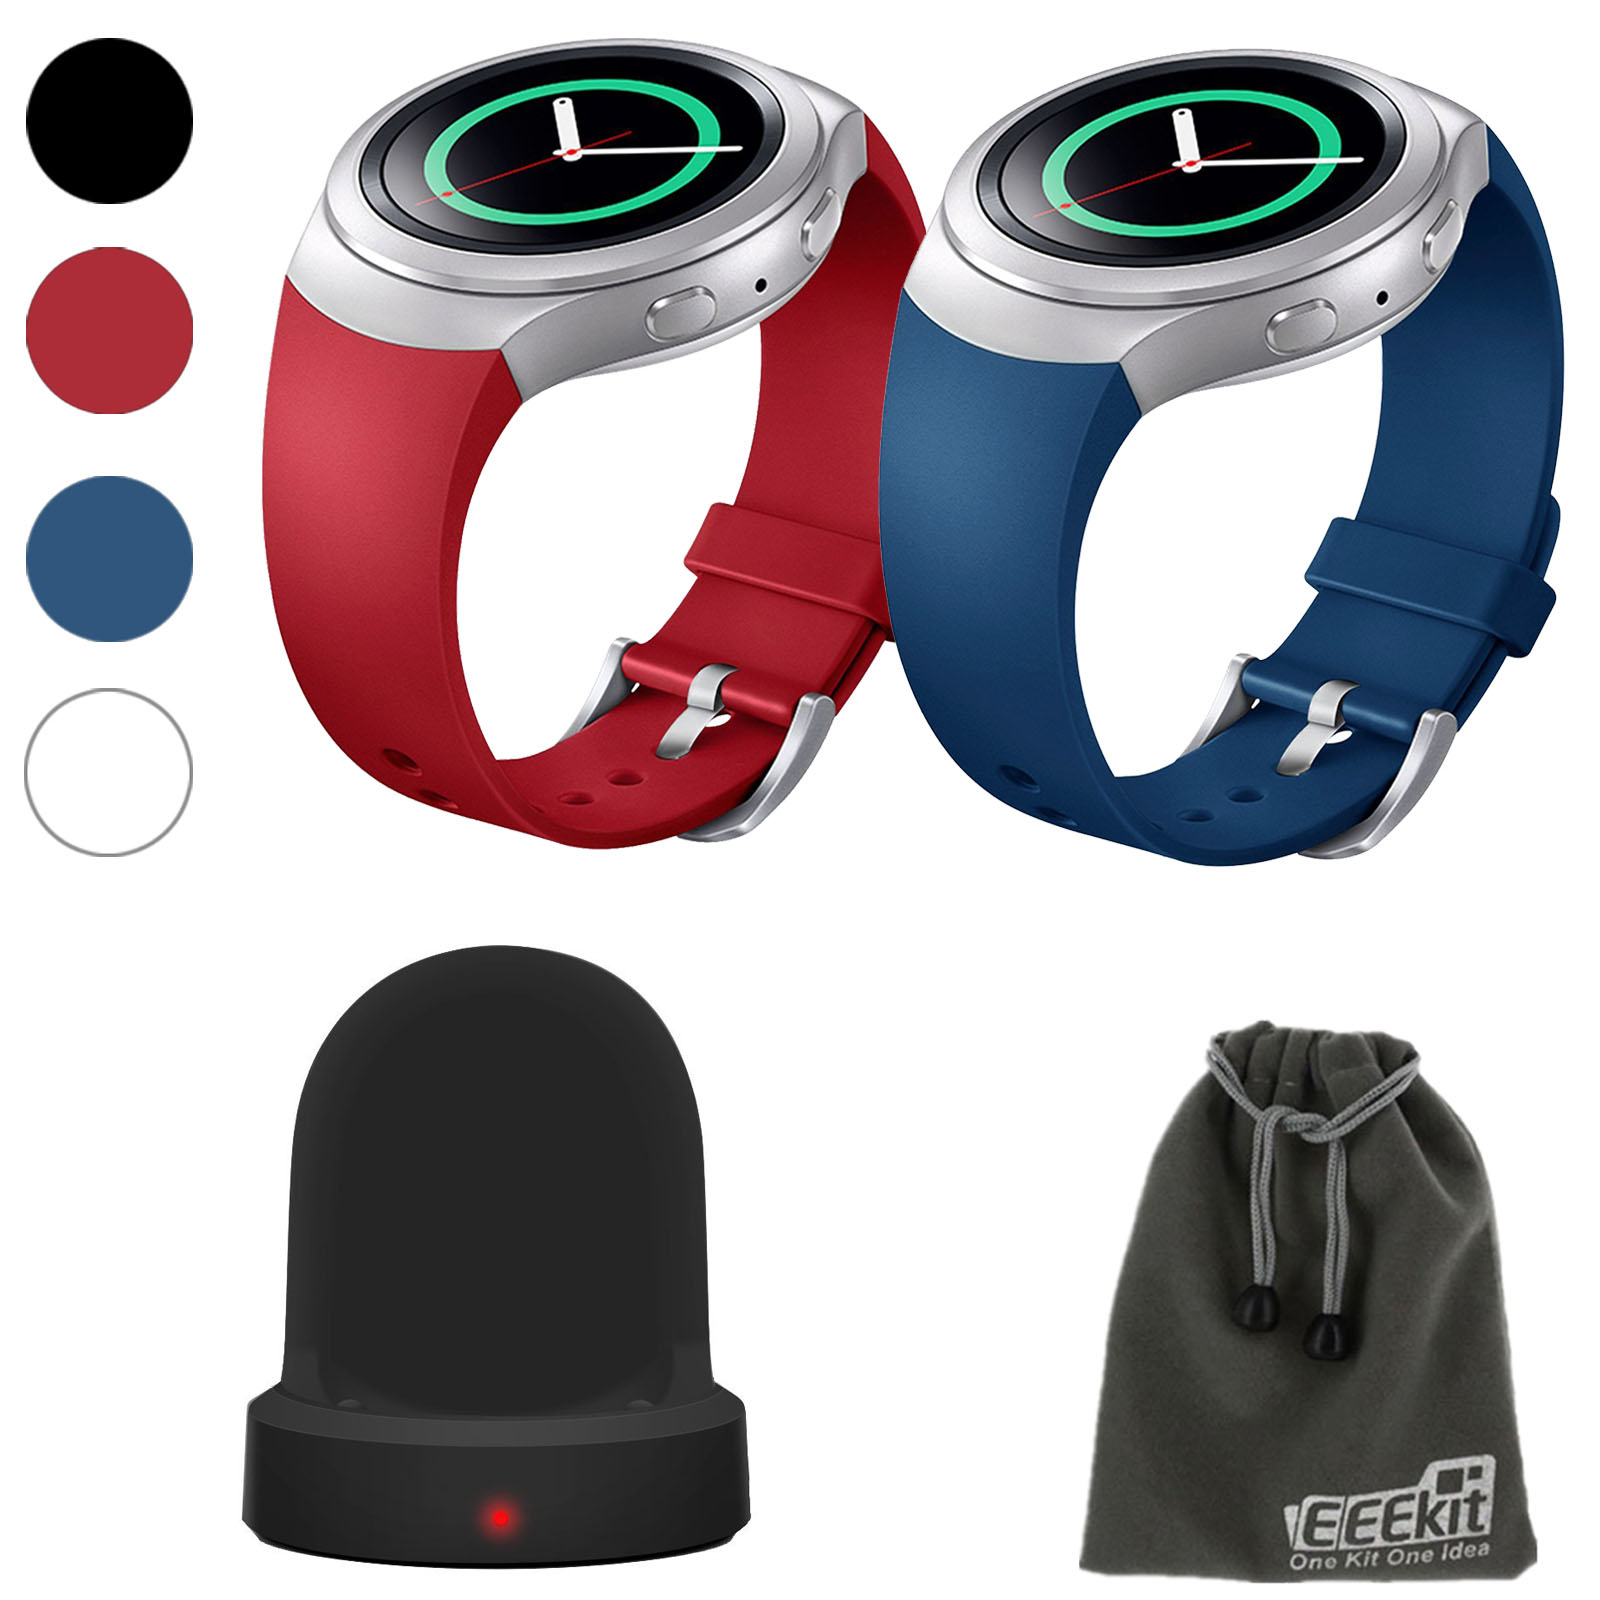 EEEKit 2in1Kit for Samsung Gear S2 SM R-720 Version, 2 Pcs Silicone Smart Watch Band Strap+Wireless Charger Dock Station